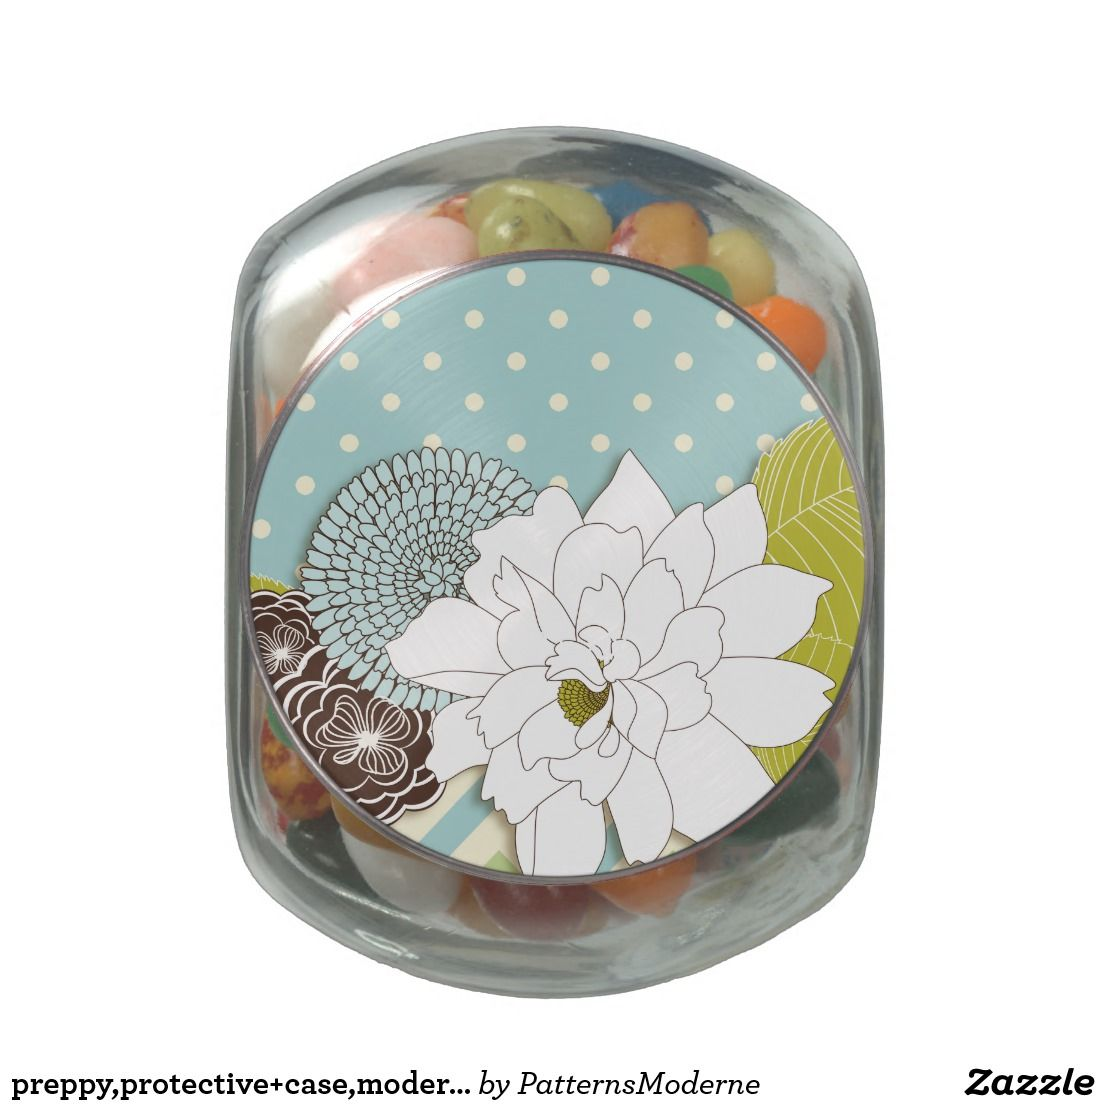 Preppy,protective+case,modern+circle+flowers,mod+h jelly belly candy ...